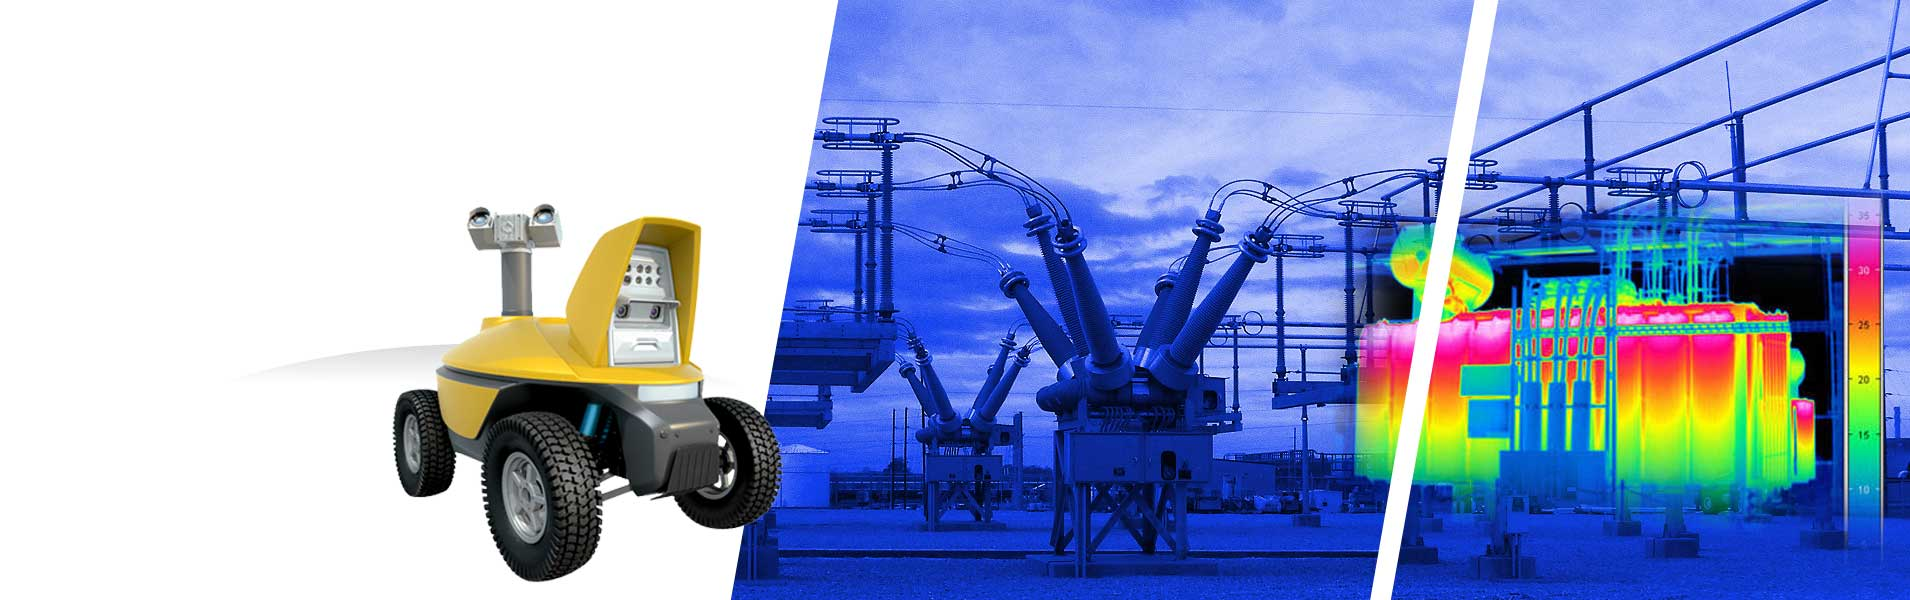 electrical_substation_inspection_robotic_system